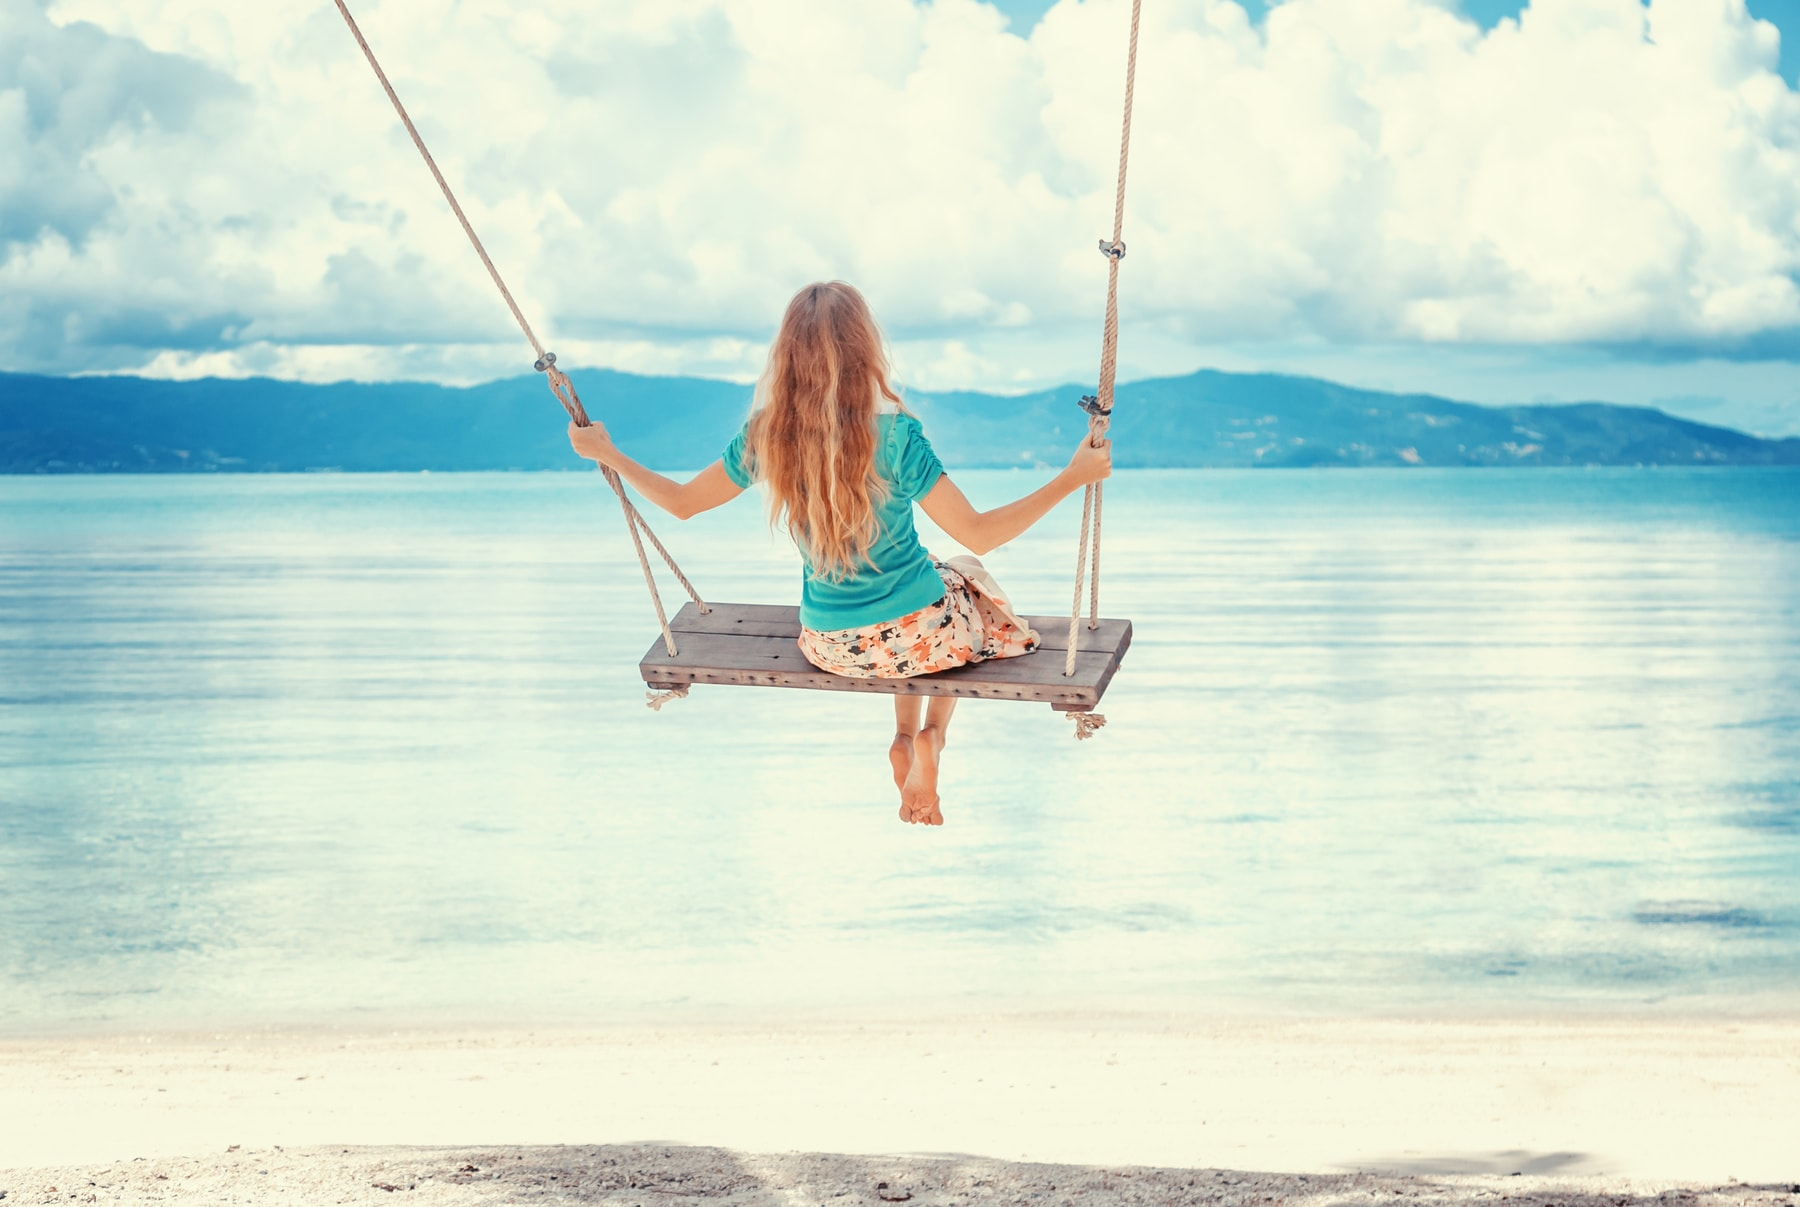 Young woman with long blond hair swinging on a swing on the shore of the tropical sea